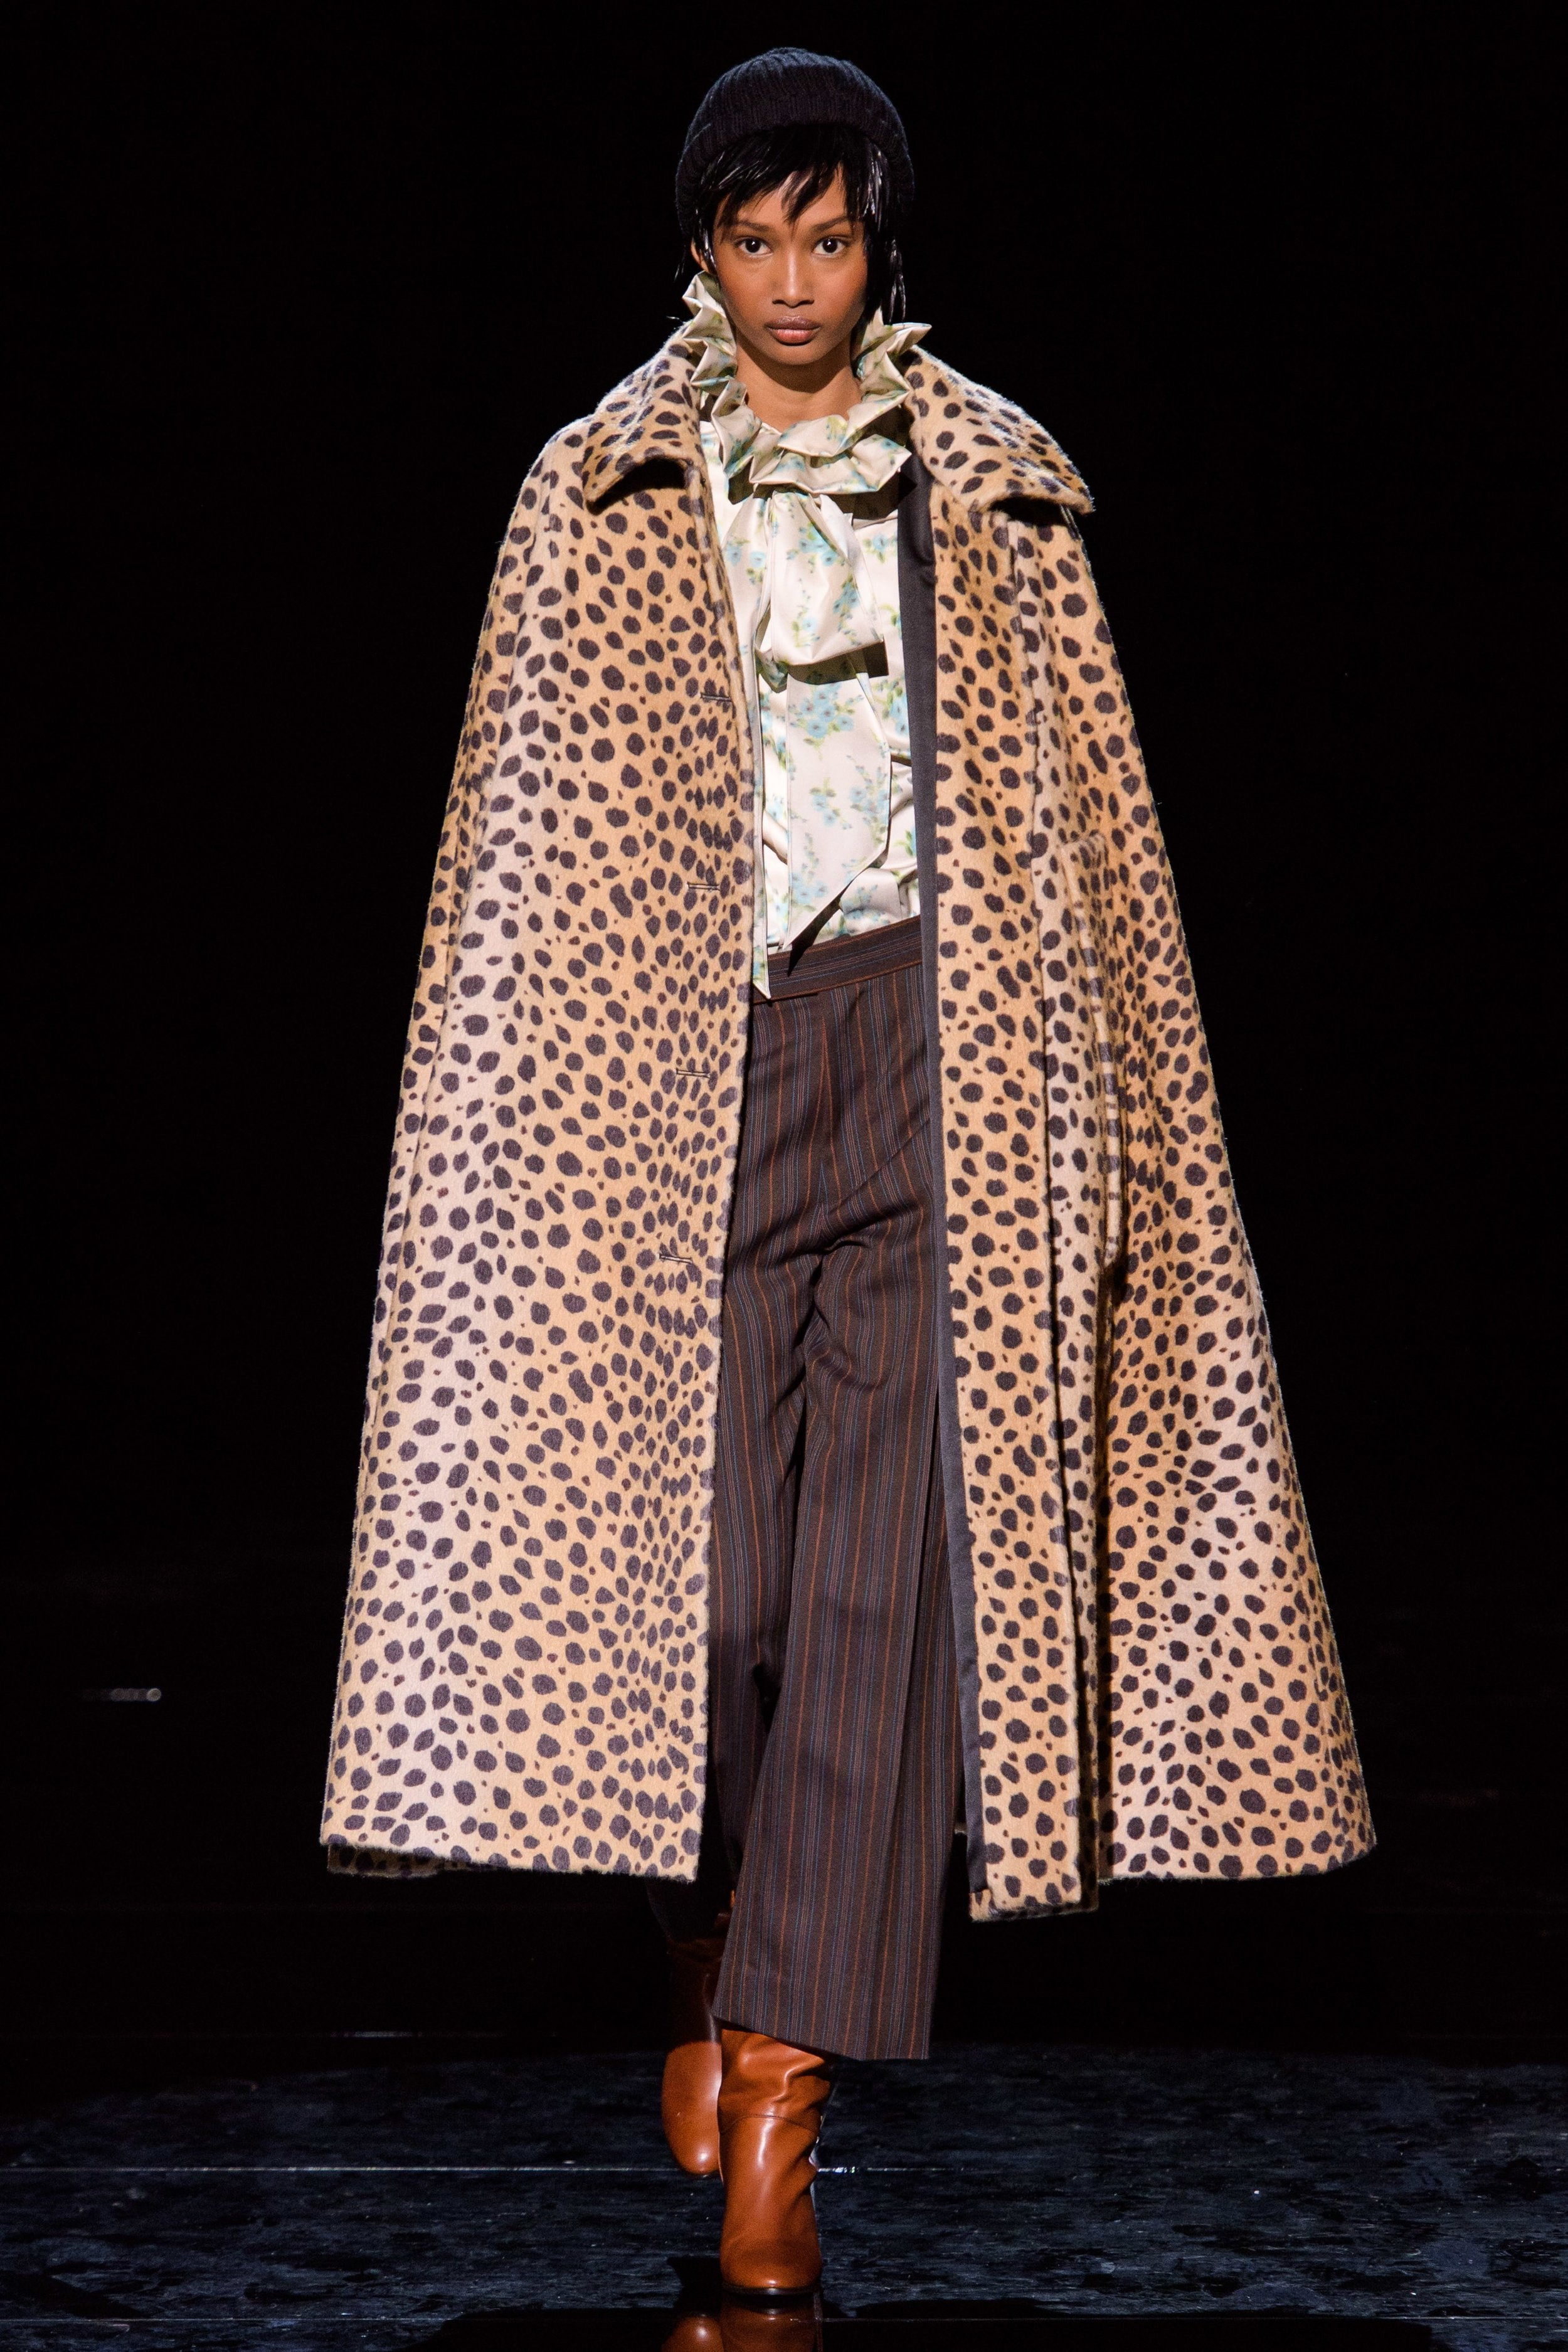 MARC JACOBS, COURTESY VOGUE RUNWAY